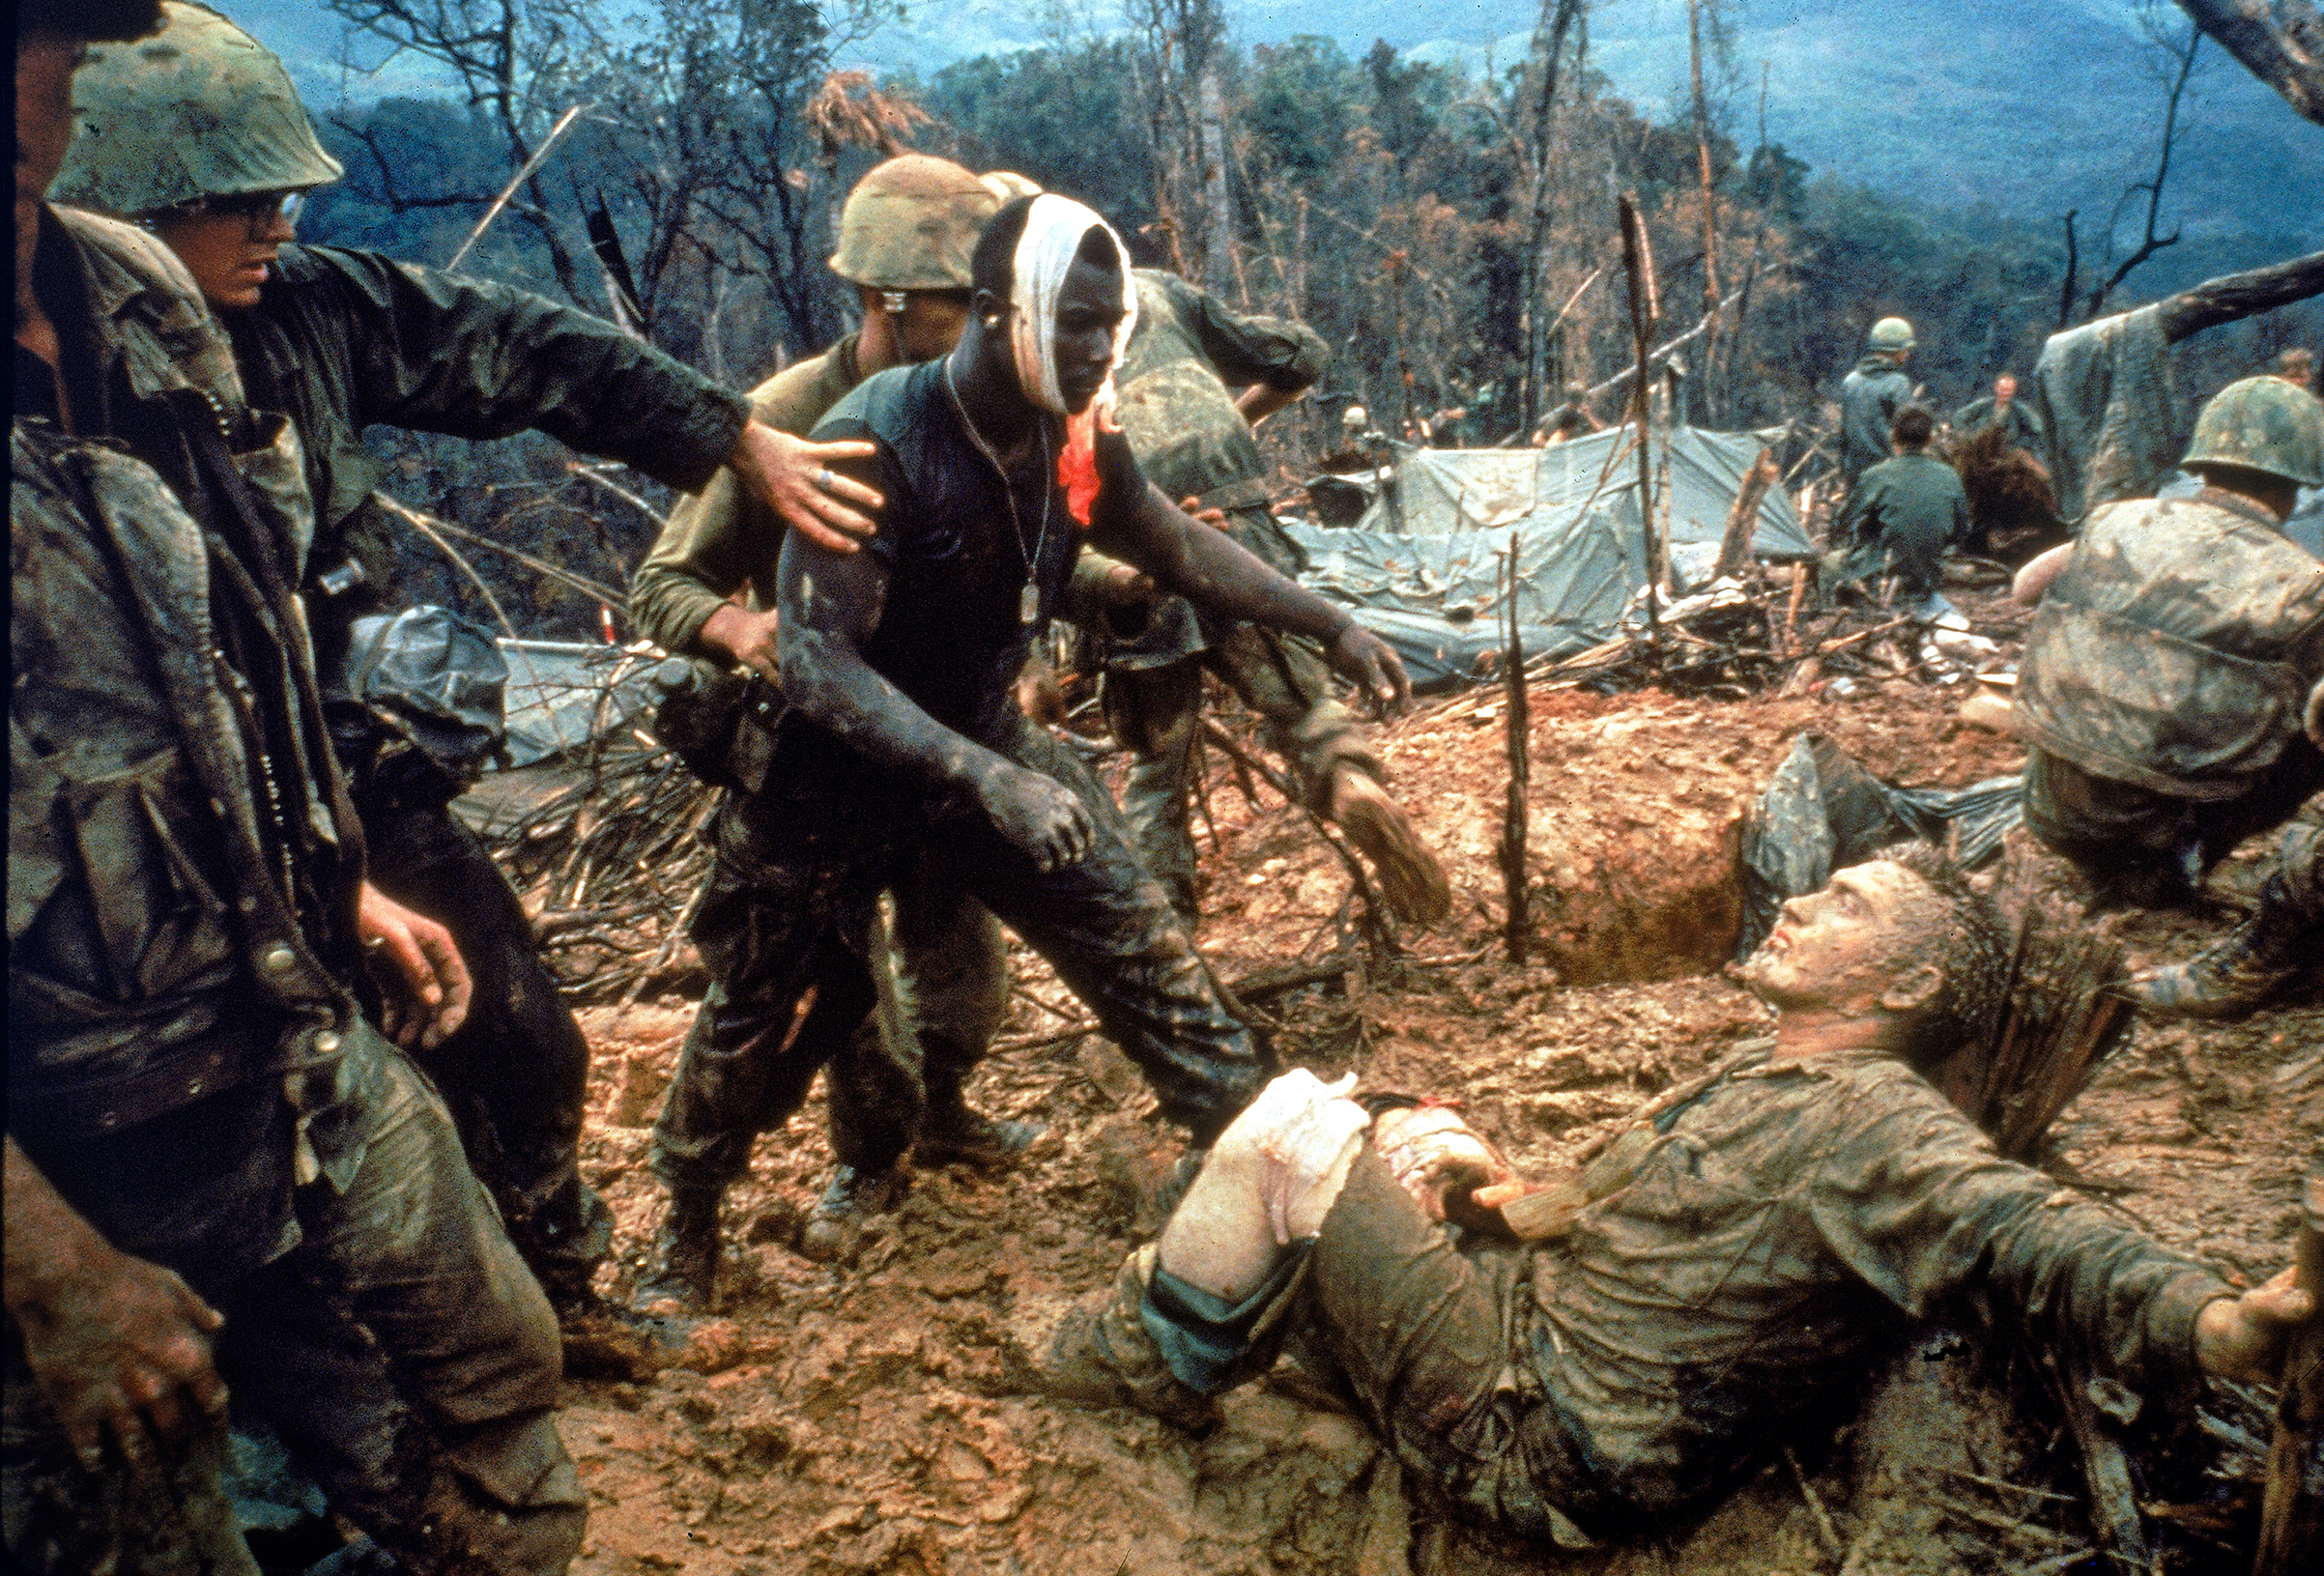 In October 1966, Marine Gunnery Sergeant JeremiahPurdie approached a wounded comradeon Hill484 near the DMZ, in what would become an iconic image of the war. Photographer Larry Burrows was killed in 1971